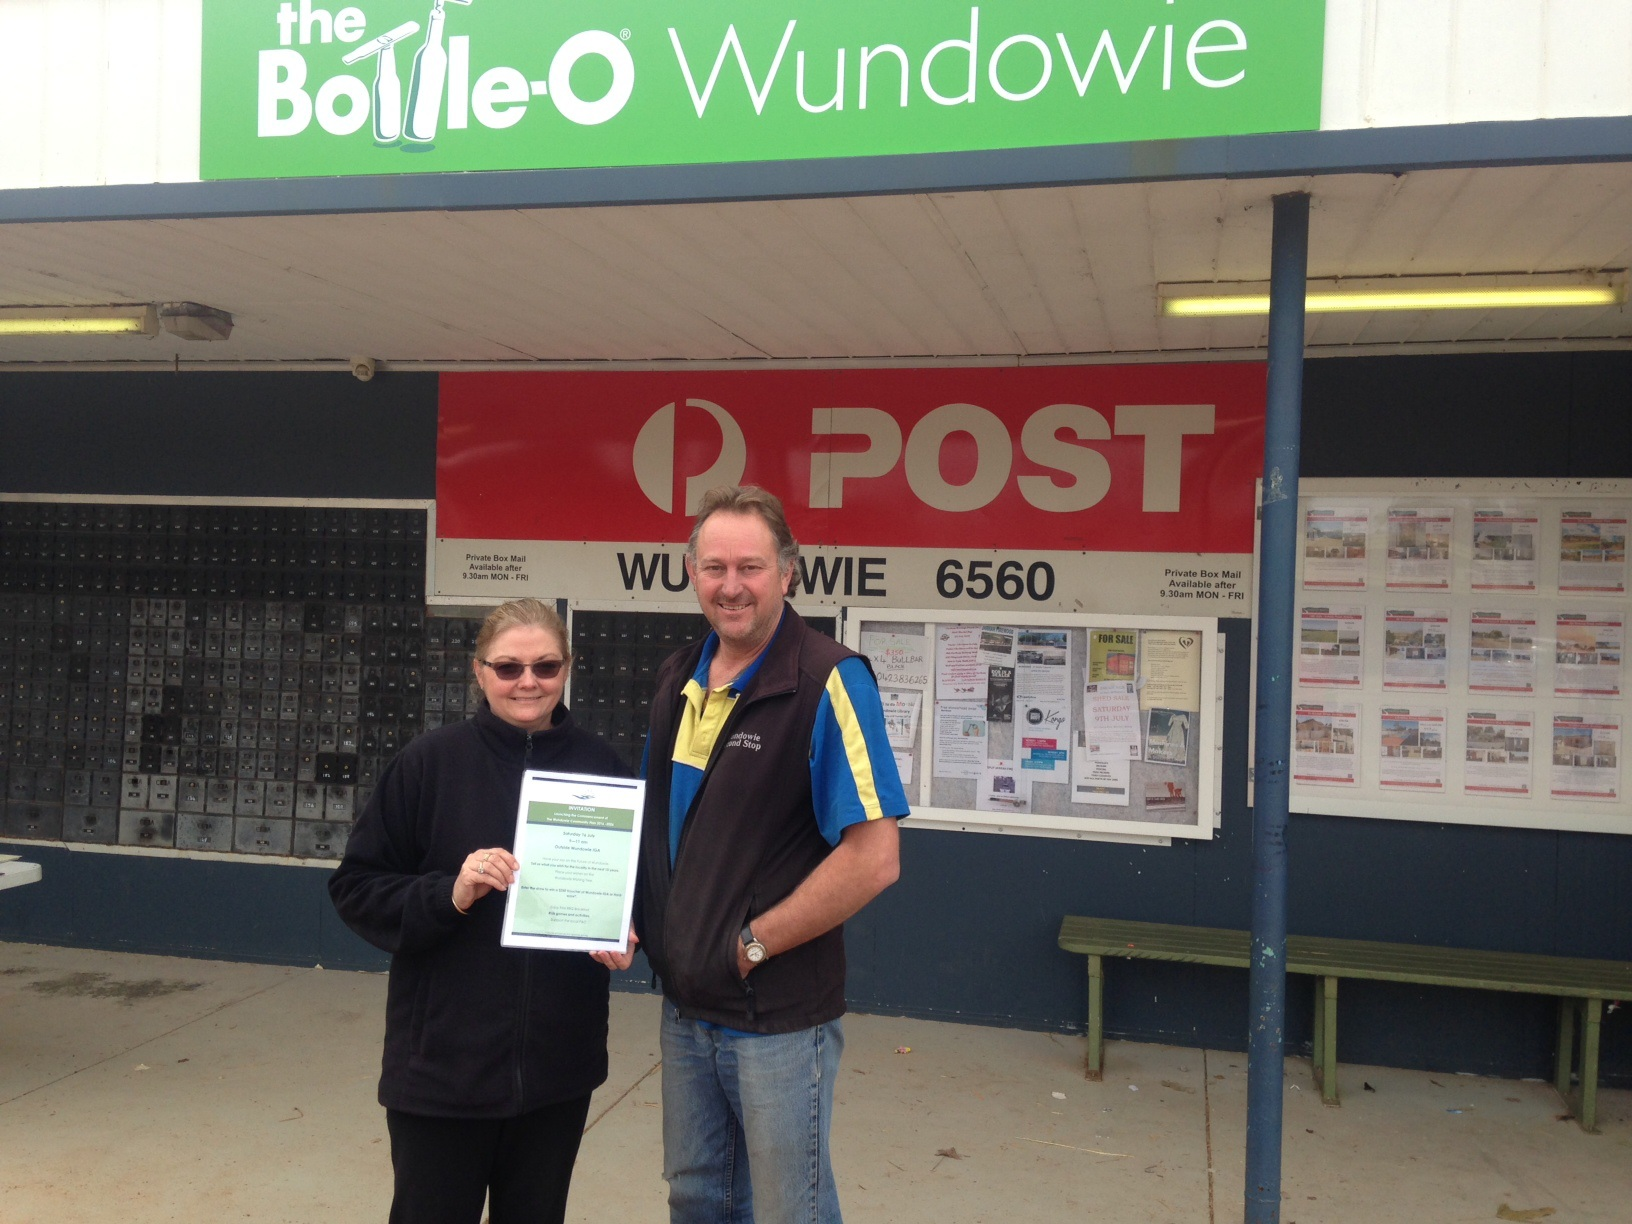 Wundowie Community Plan to be launched with wishing tree initiative